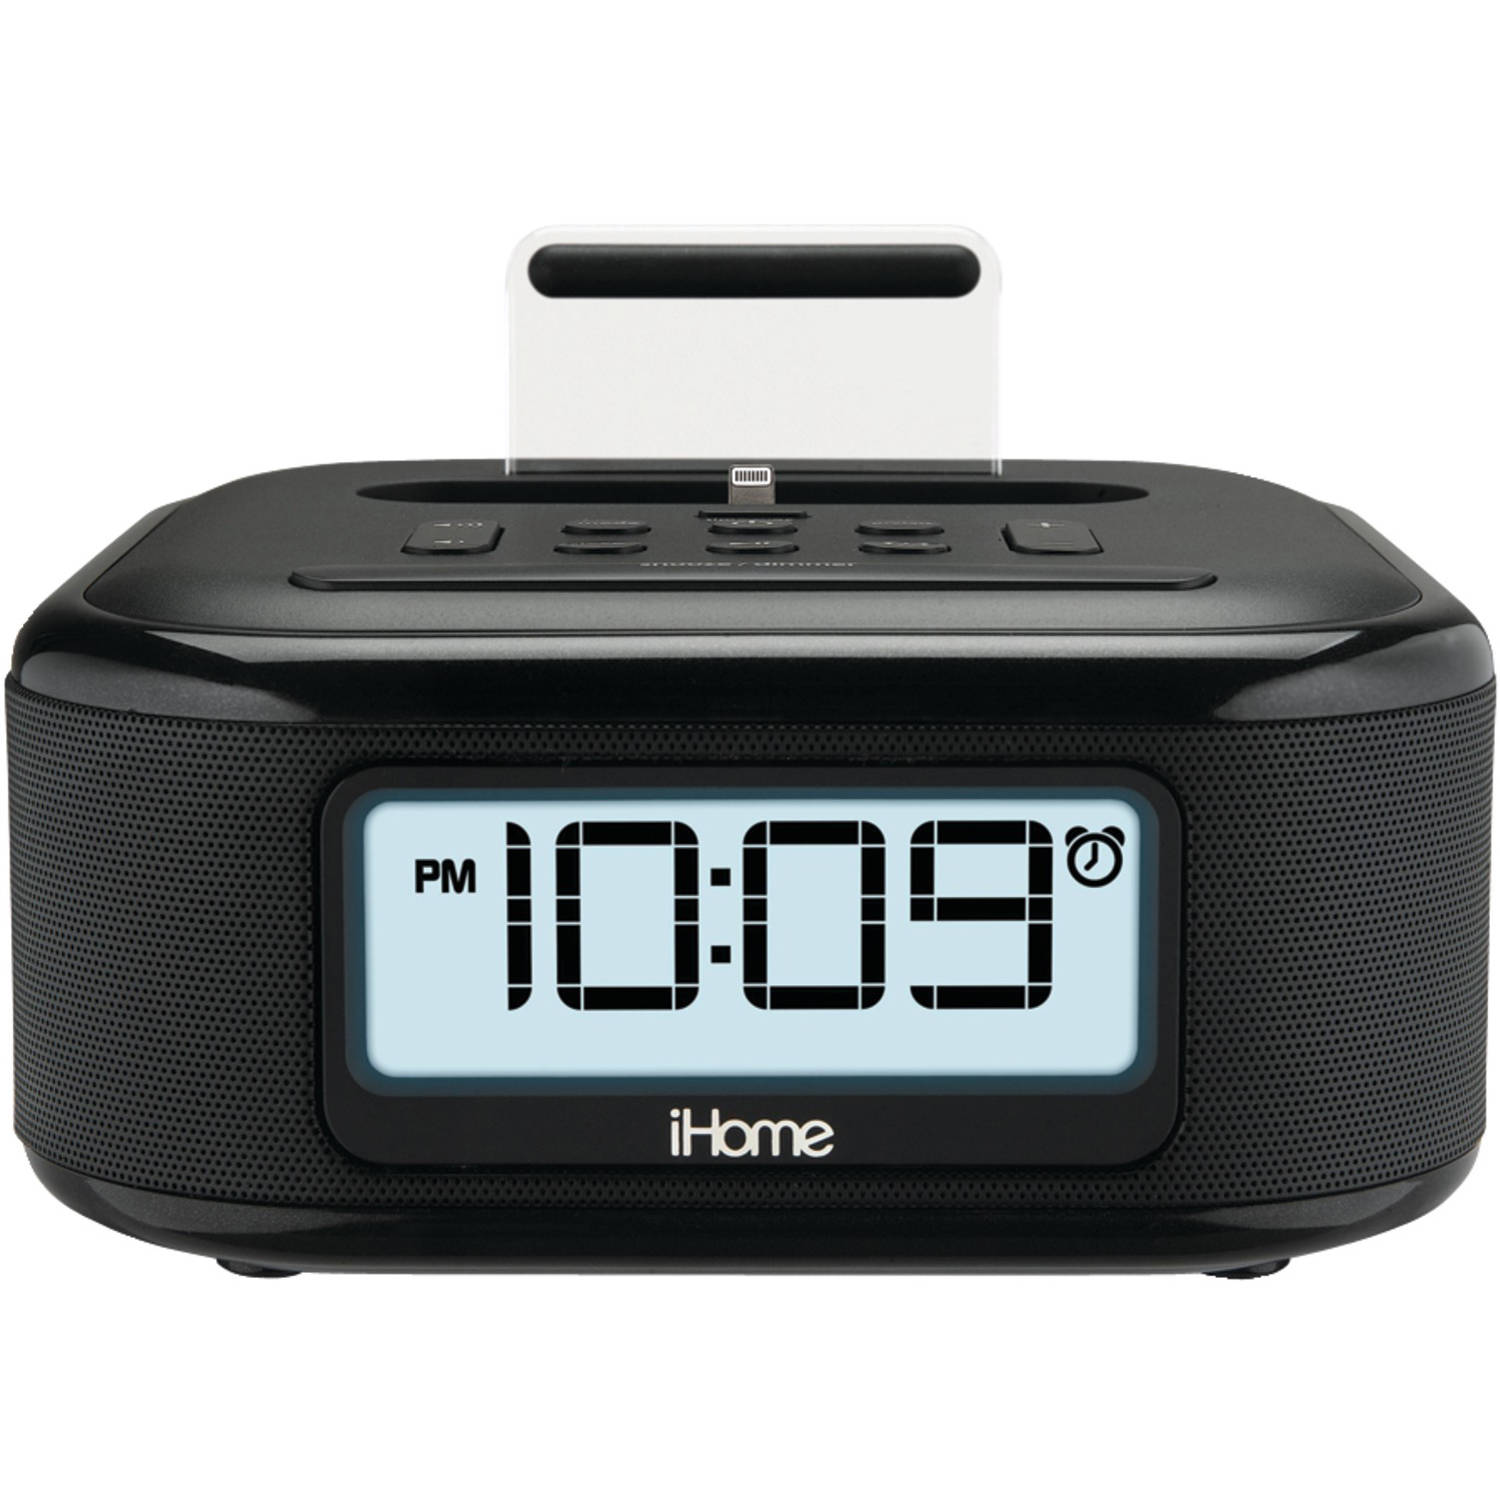 iHome IPL23B Stereo FM Clock Radio with Lightning Connector